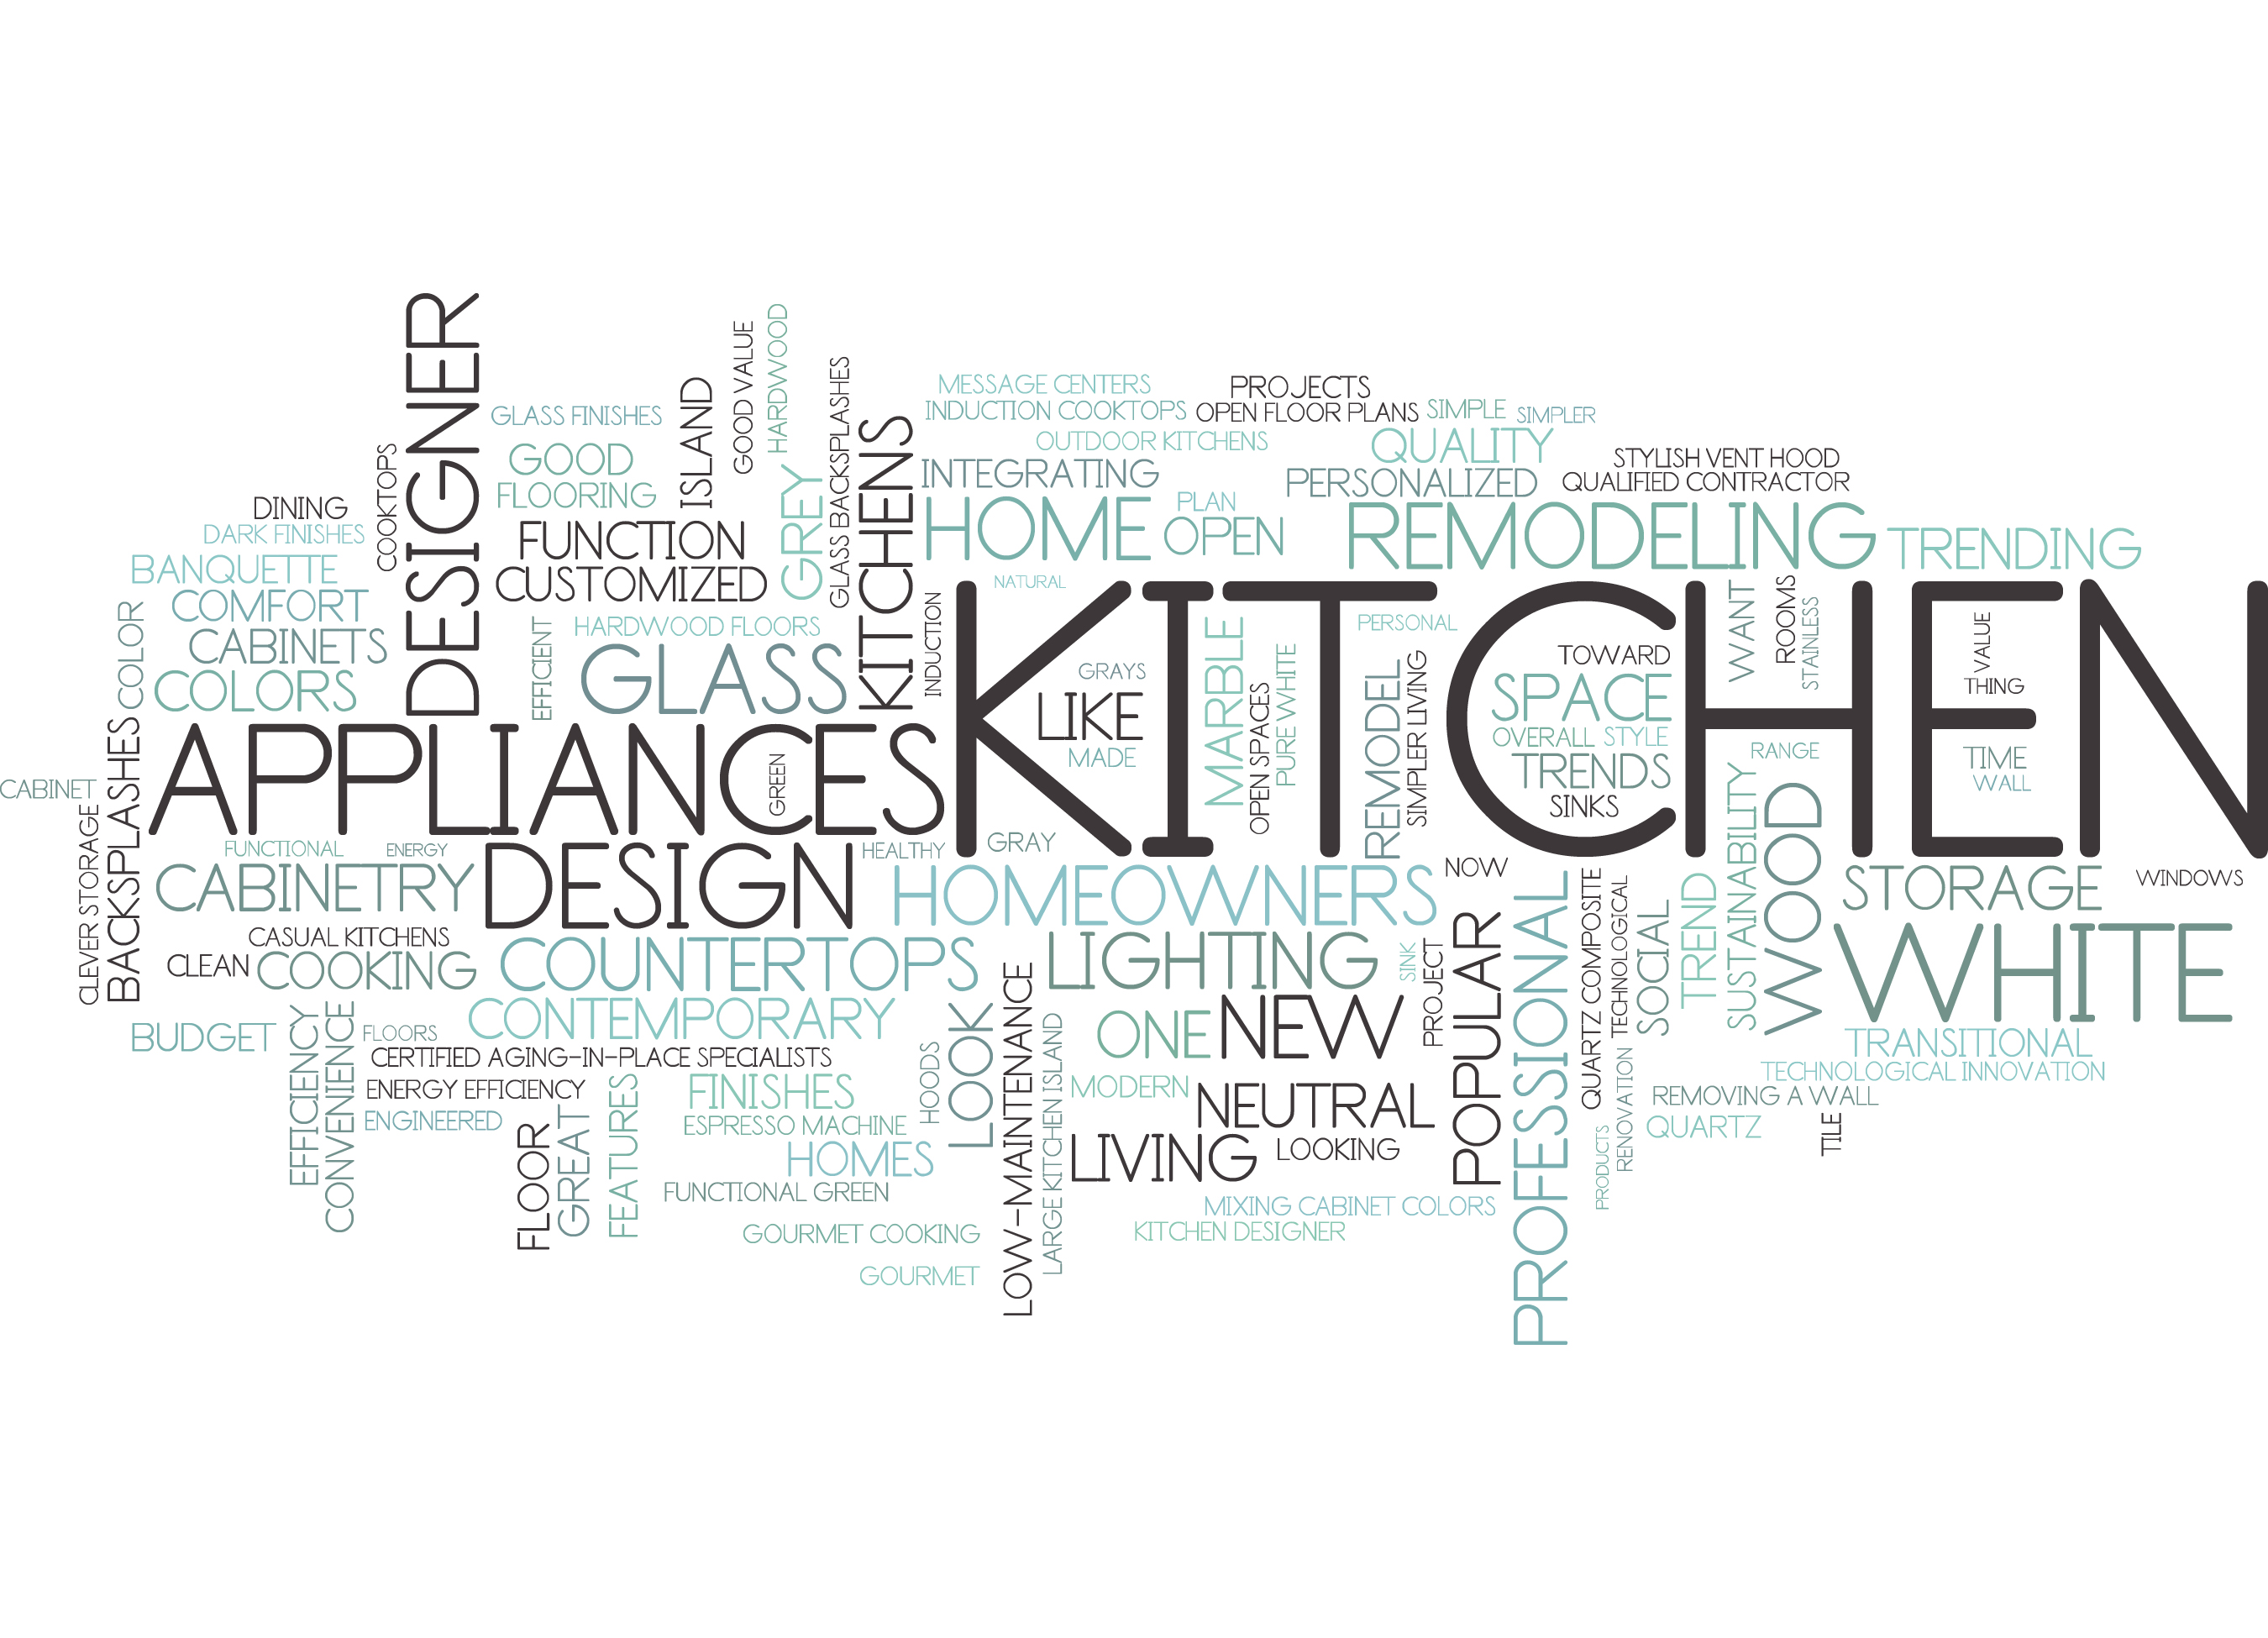 kitchen trends wordle